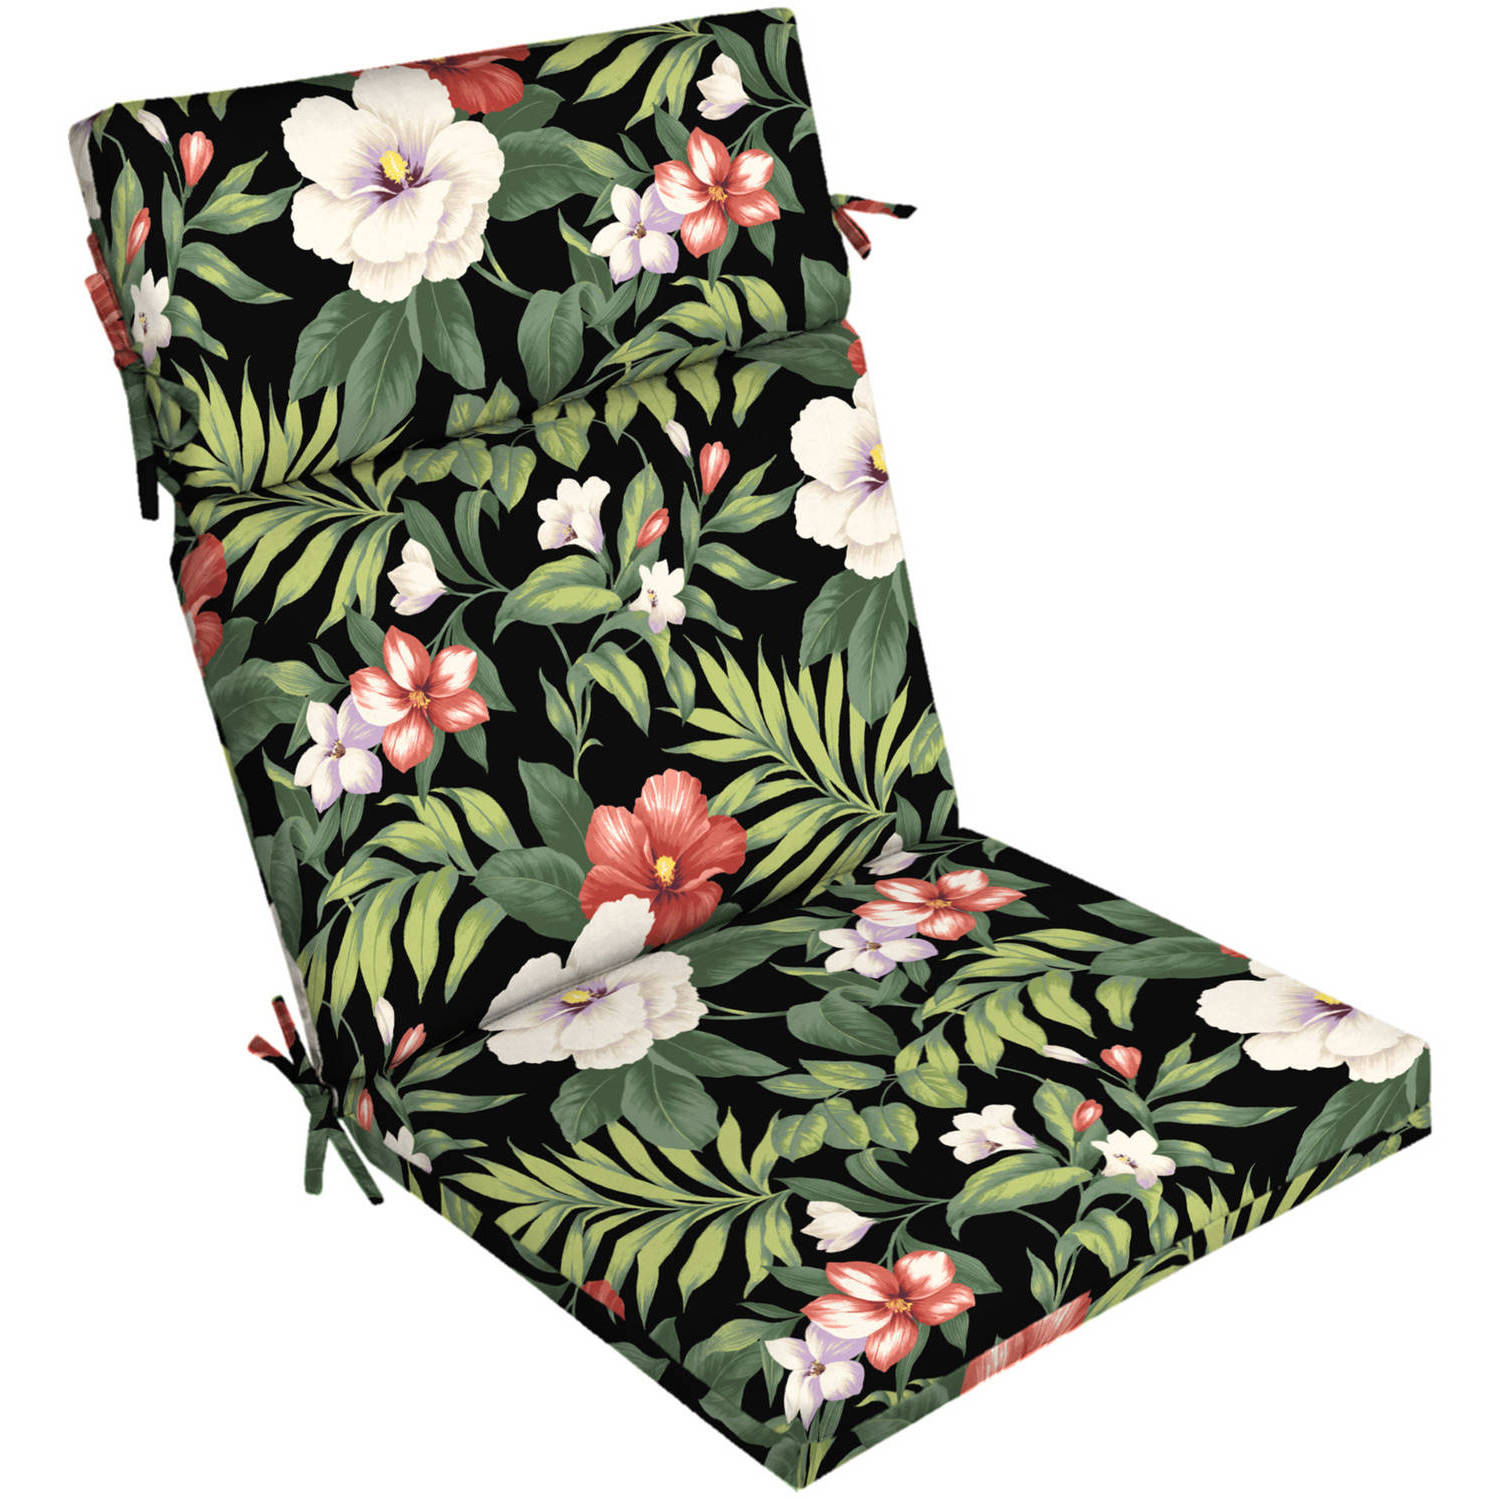 Better Homes And Gardens Outdoor Patio Dining Chair Cushion, Multiple  Patterns